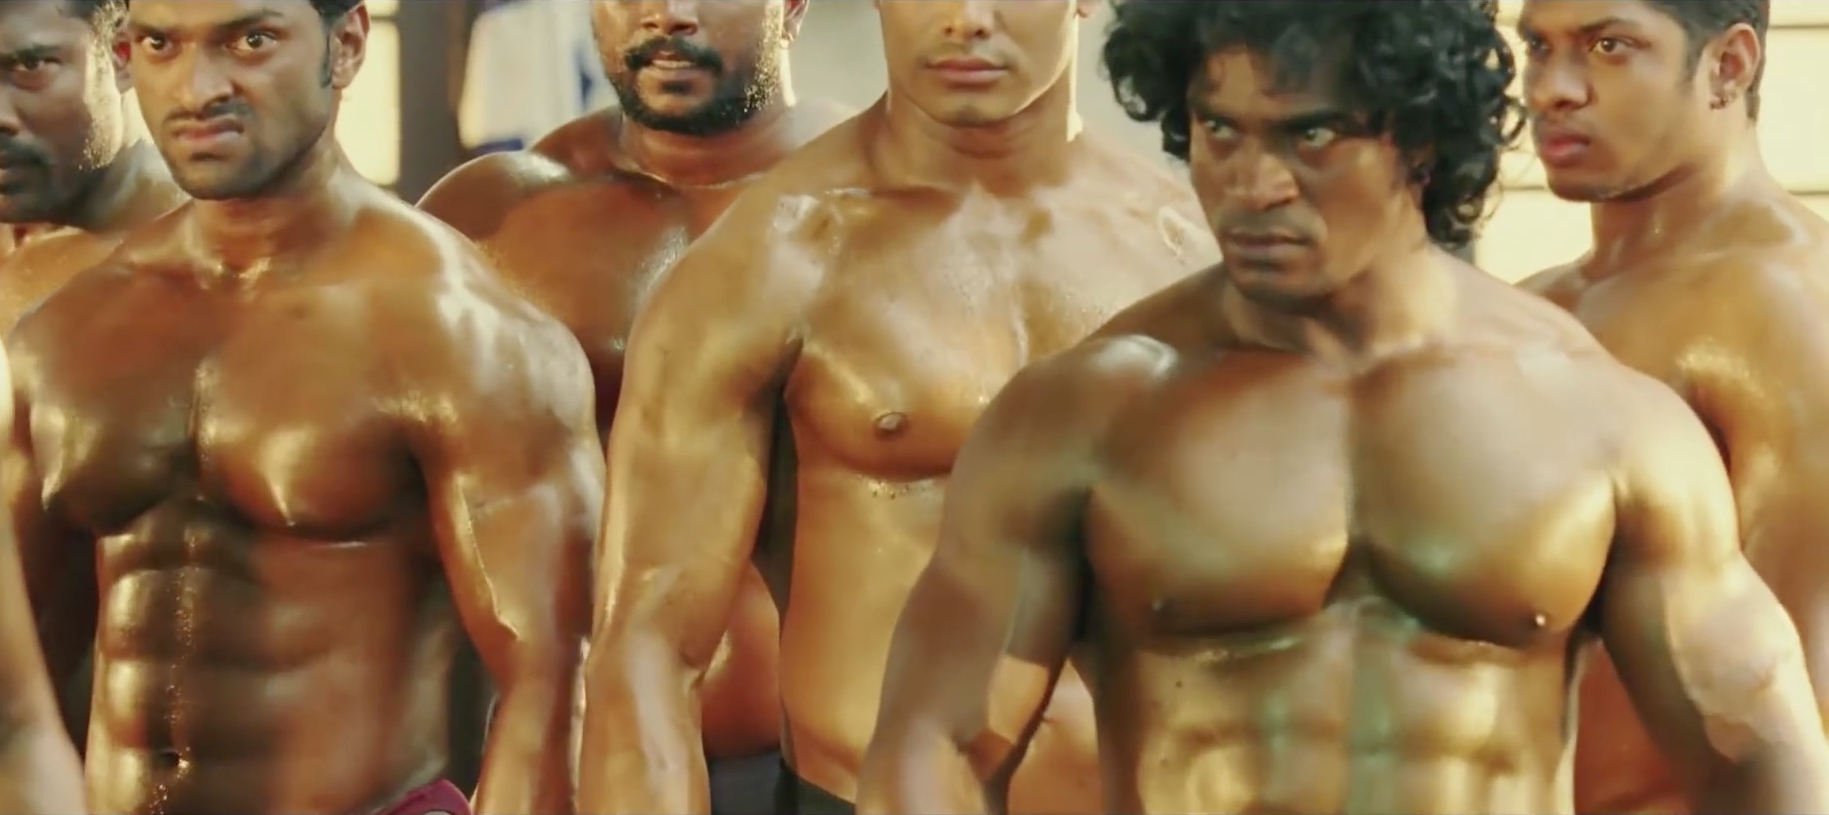 Du muscle, de l'action à la sauce Bollywood